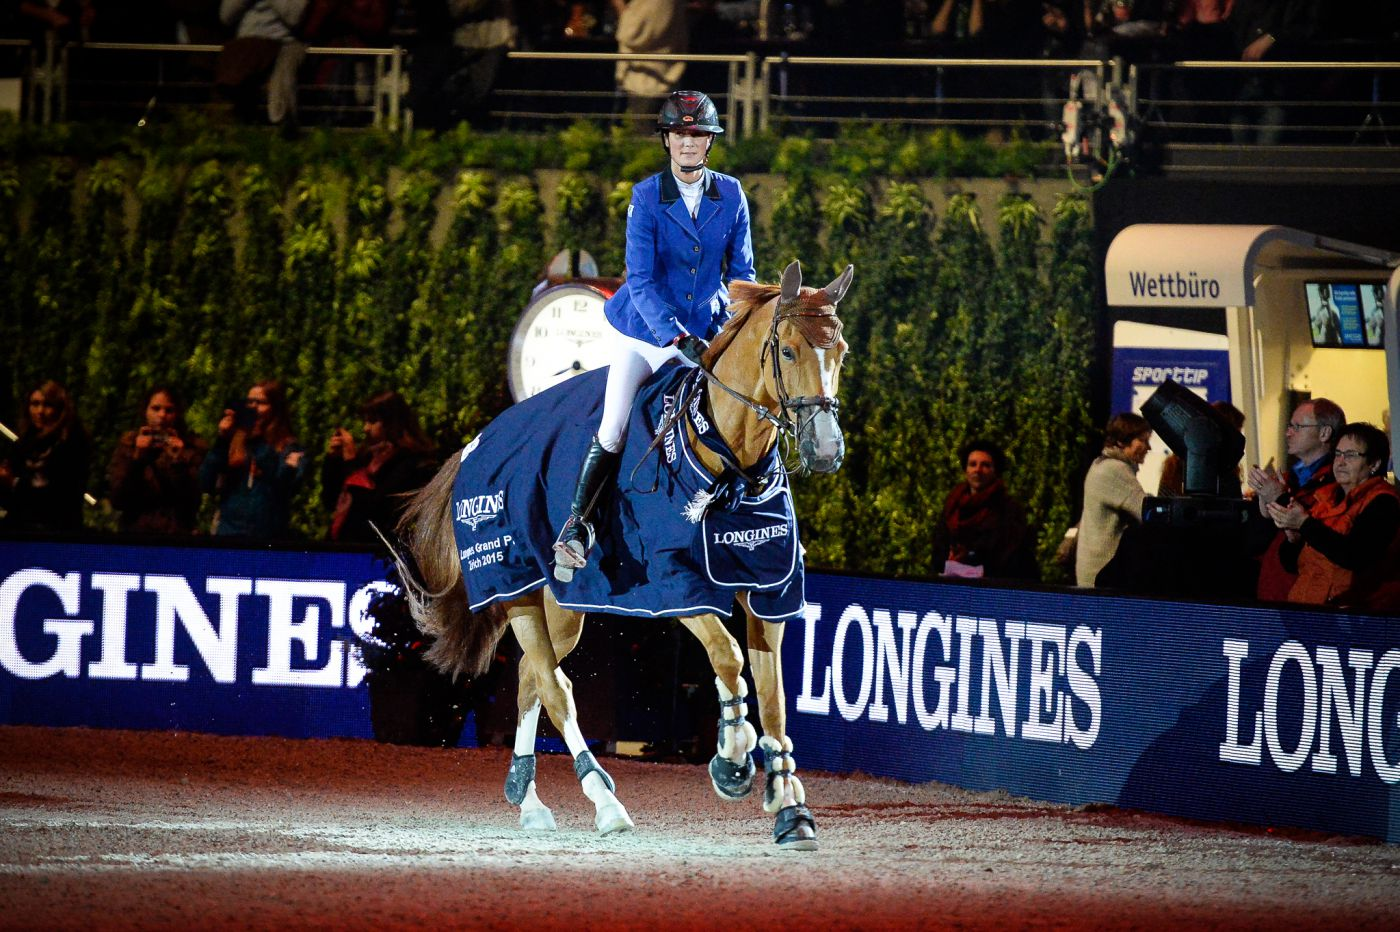 Longines Show Jumping Event: Sergio Alvarez Moya (ESP) wins the Swiss leg of the Longines FEI World Cup™ in Zurich 1